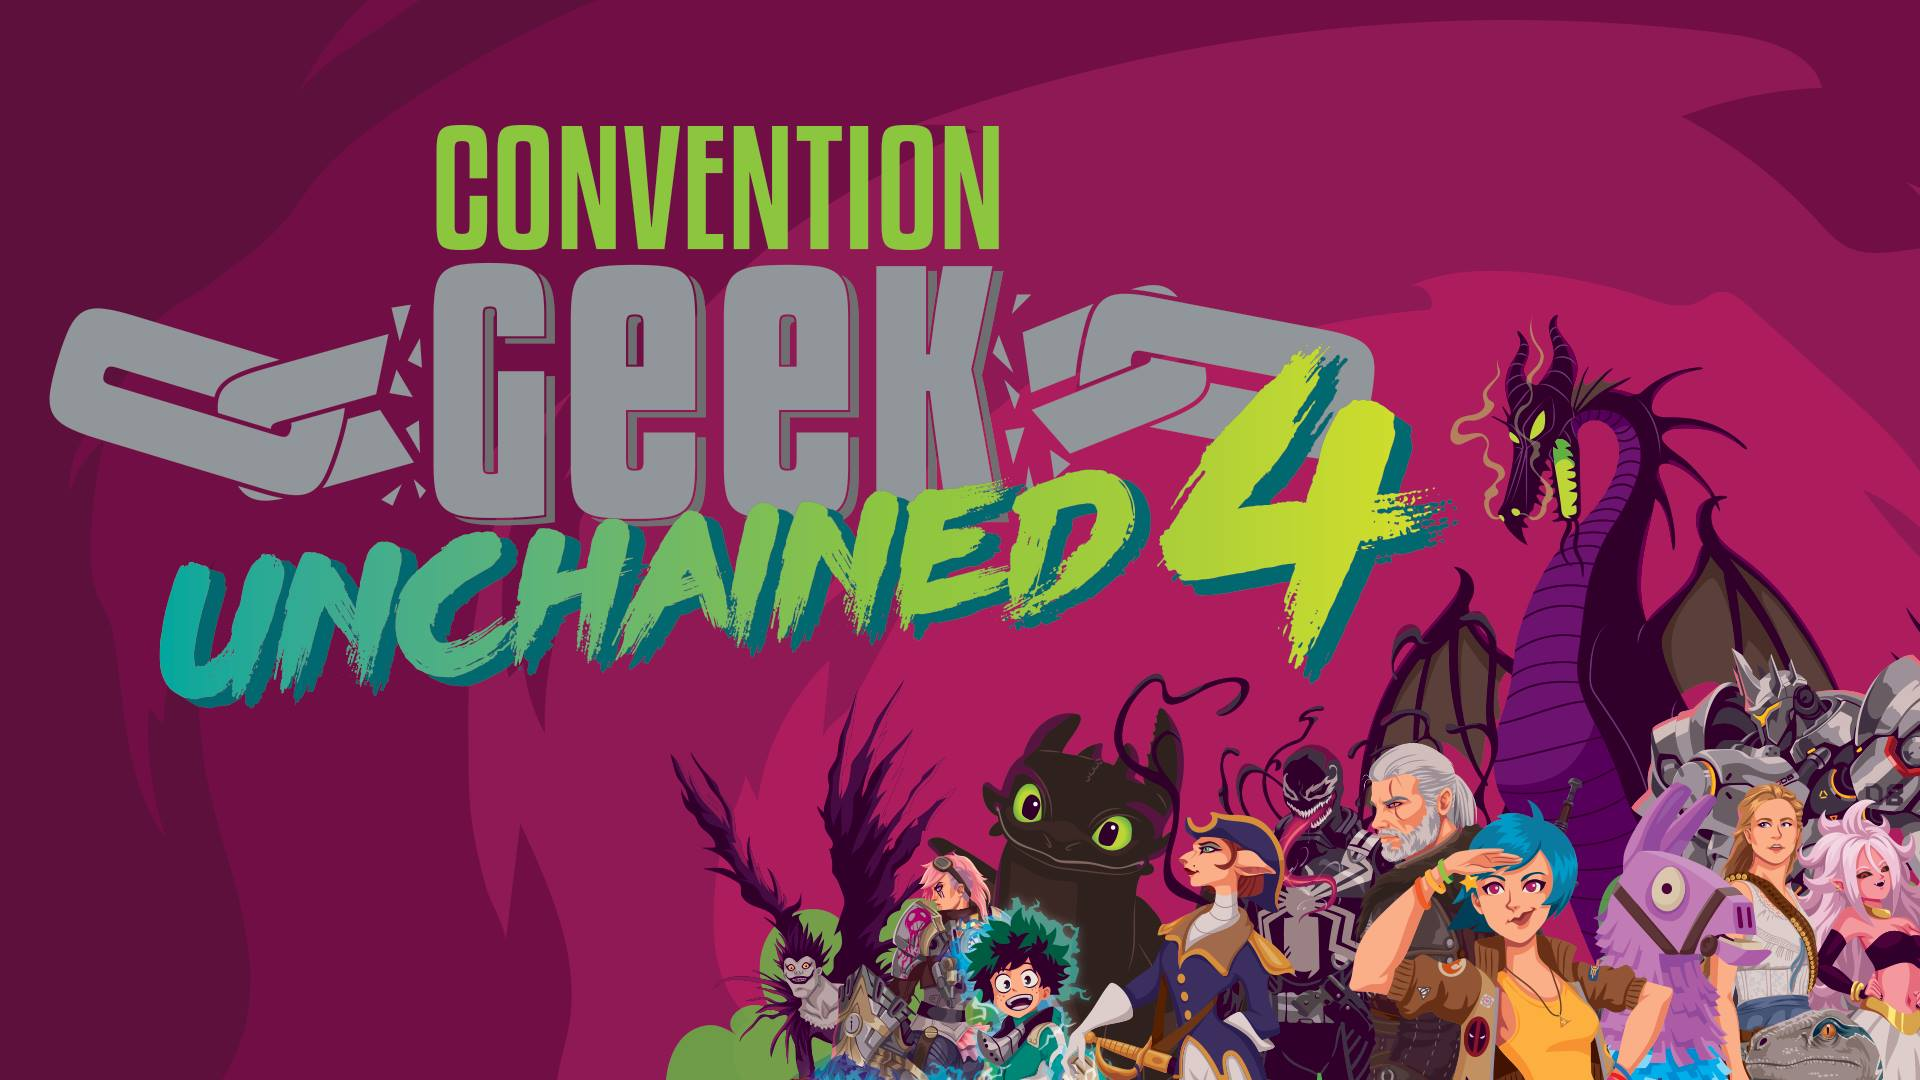 [ÉVÉNEMENT] Convention Geek Unchained 4